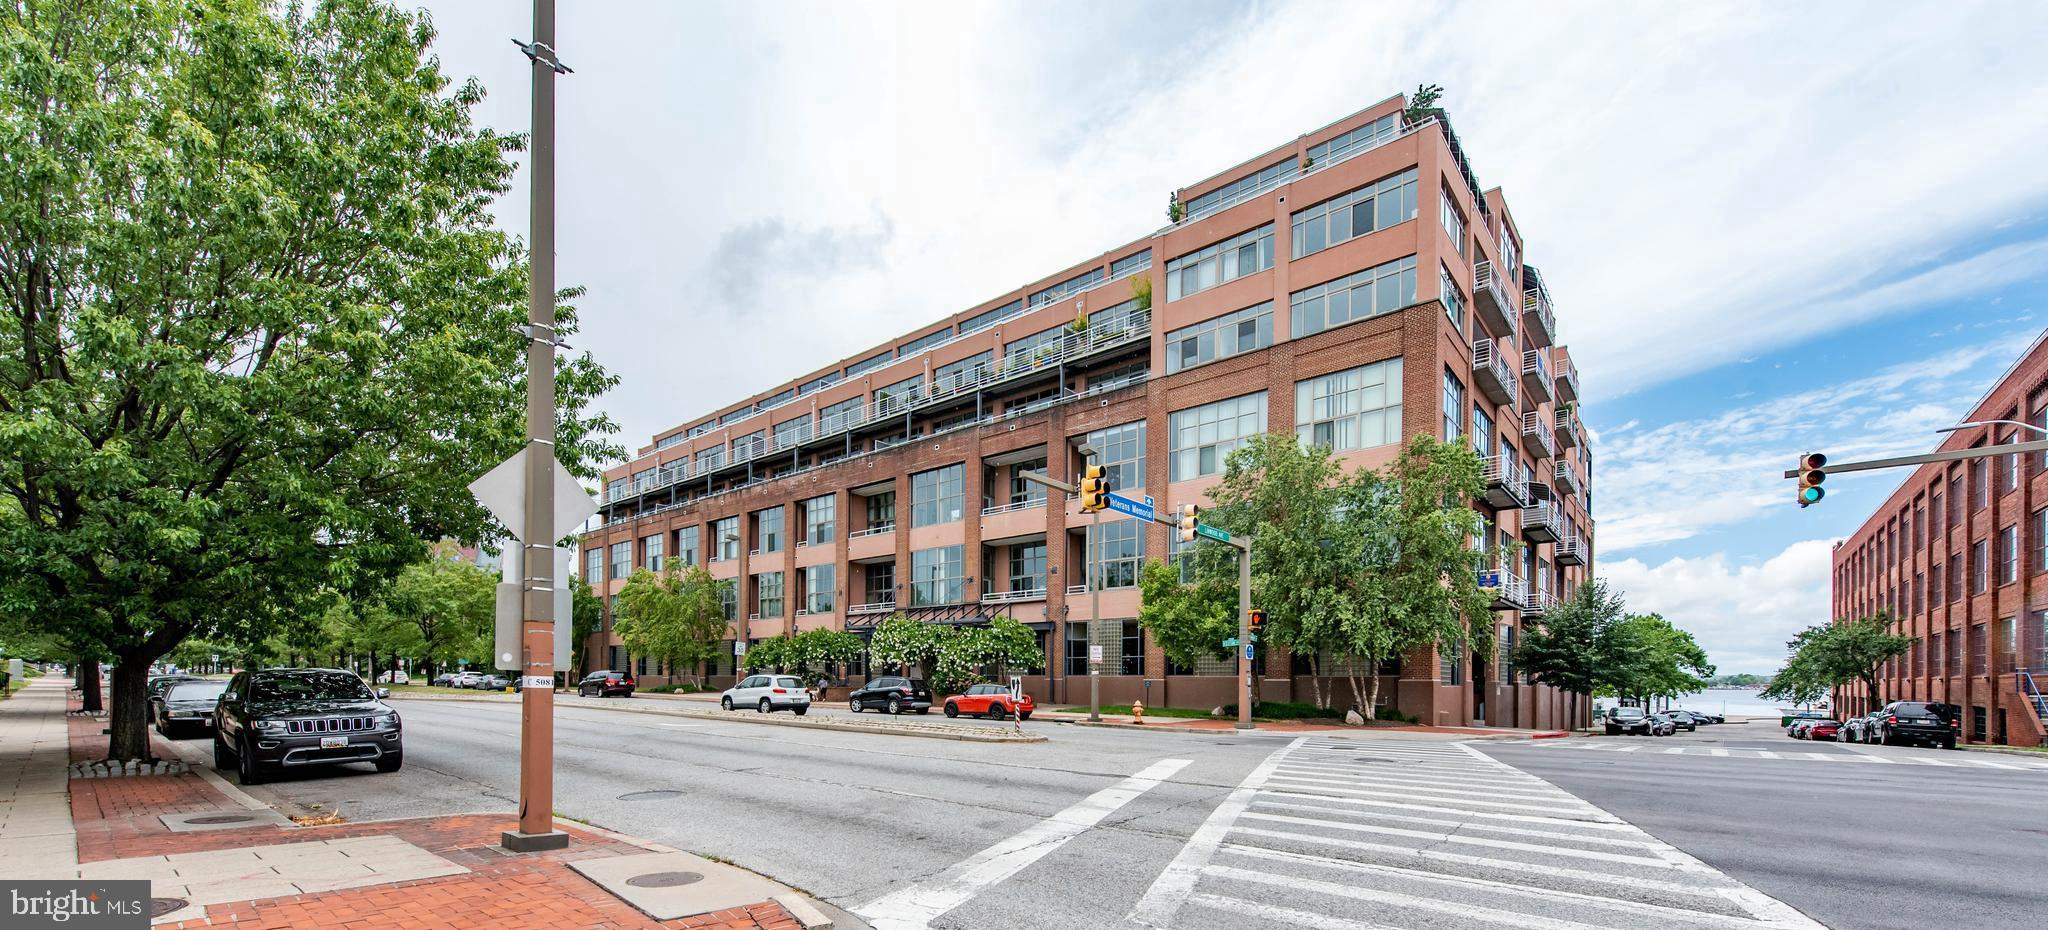 Stunning condo located in coveted Canton Cove on the waterfront featuring panoramic cityscape views. Floor to ceiling window, 9ft ceilings, wall to wall windows and covered balcony that stretches the length of the unit!  This home offers 3 bedrooms, each with balcony access, and 2.5 baths, including the Owner's suite with gas fireplace, custom walk-in closet, and deluxe full bath with marble tile, dual rain head shower, jetted tub and bidet. Beautifully updated kitchen features marble counters, island, black and stainless steel appliances and classic white cabinets.  Elegant formal dining room leads to a sundrenched living room boasting a cozy wood fireplace and a wall of windows with access to balcony.  Enjoy rooftop access for fireworks and parties, 2 assigned parking spots in private lot.   Stroll the Canton waterfront and visit the shops and restaurants in and around the square  as well as nearby Fells Point and Harbor East.